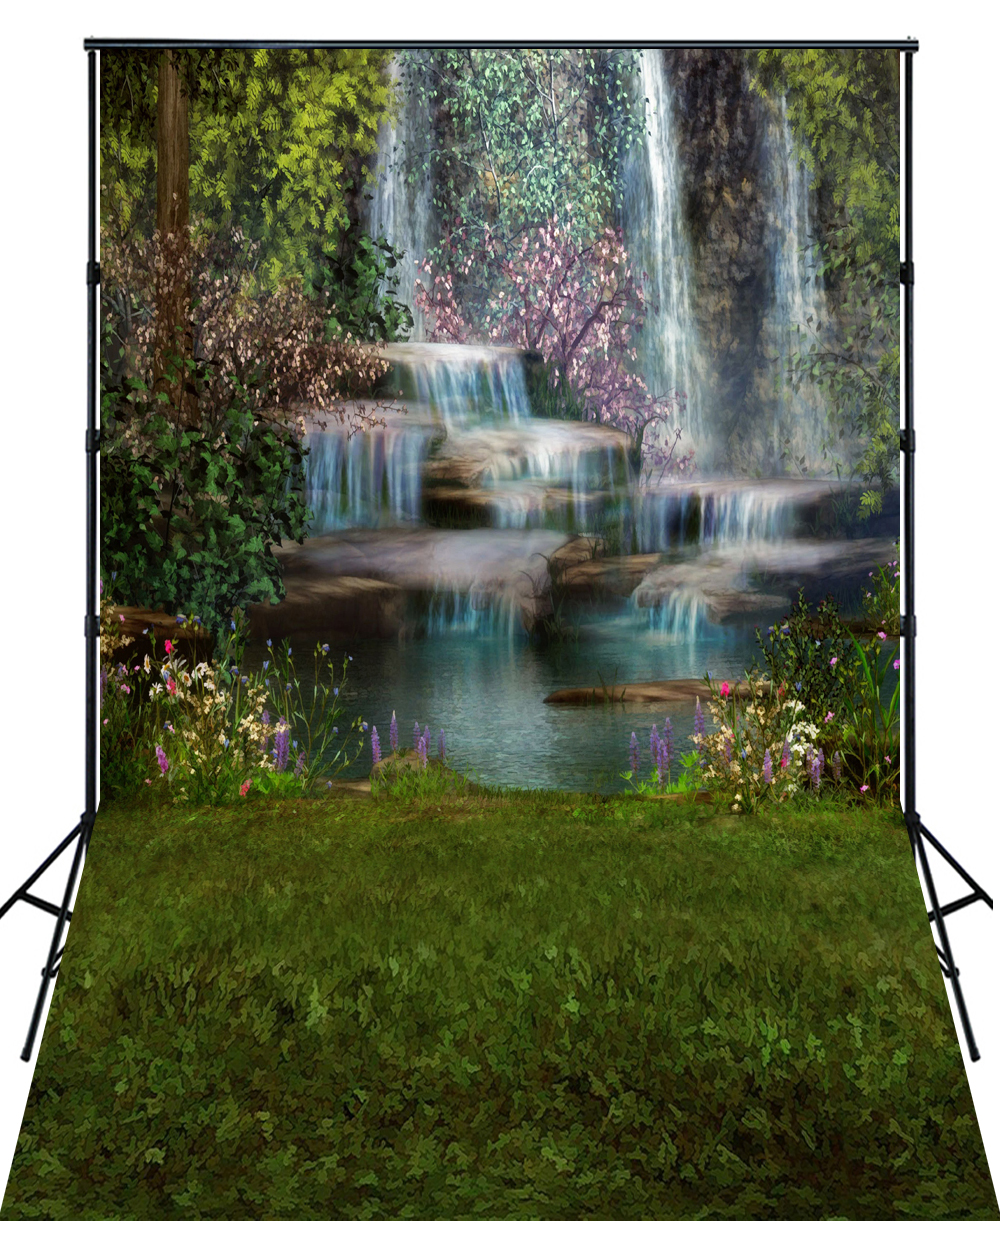 2016 New arrival fairy tale photography backdrops grass photo background for newborn photo XT-4184 2016 new arrival fairy tale photography backdrops grass photo background for newborn photo xt 4184